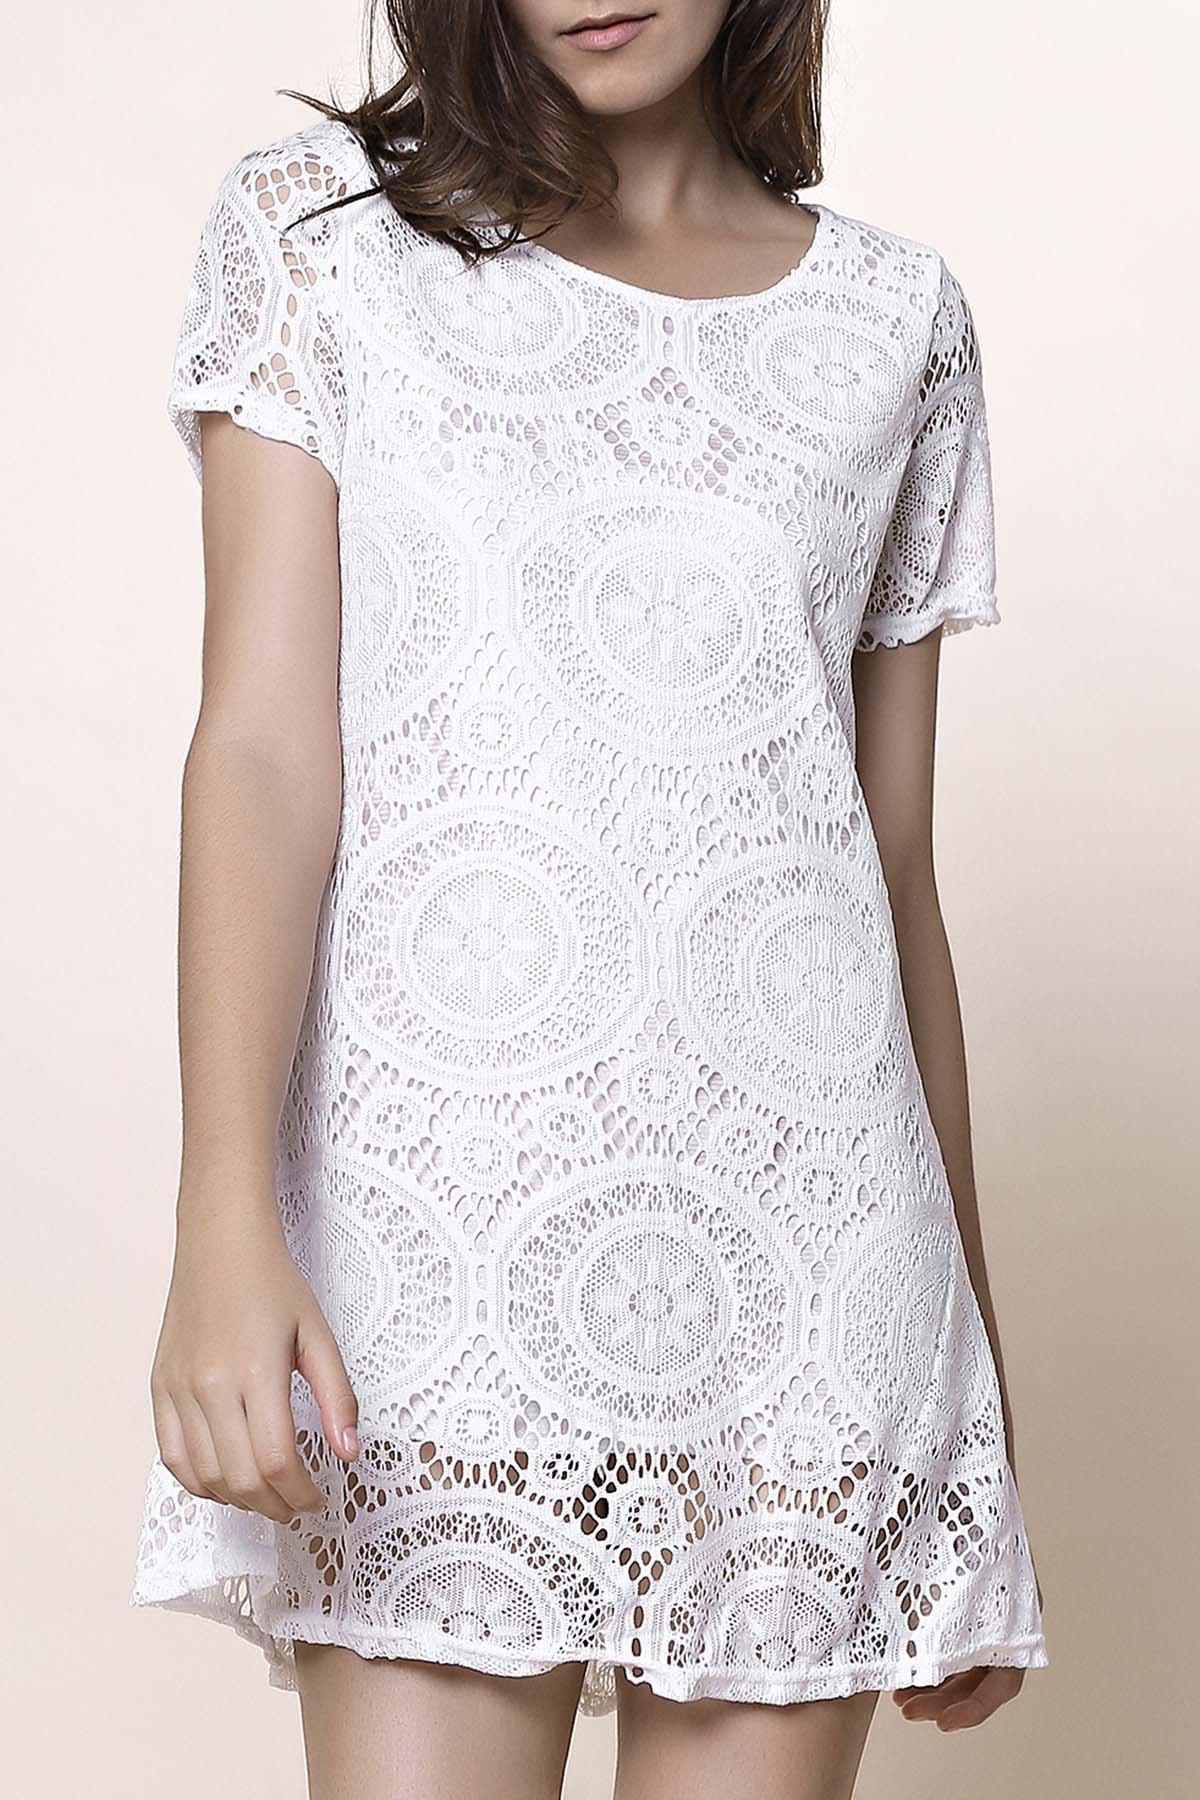 Stylish Short Sleeve Round Collar Solid Color Lace Women's Dress - WHITE M